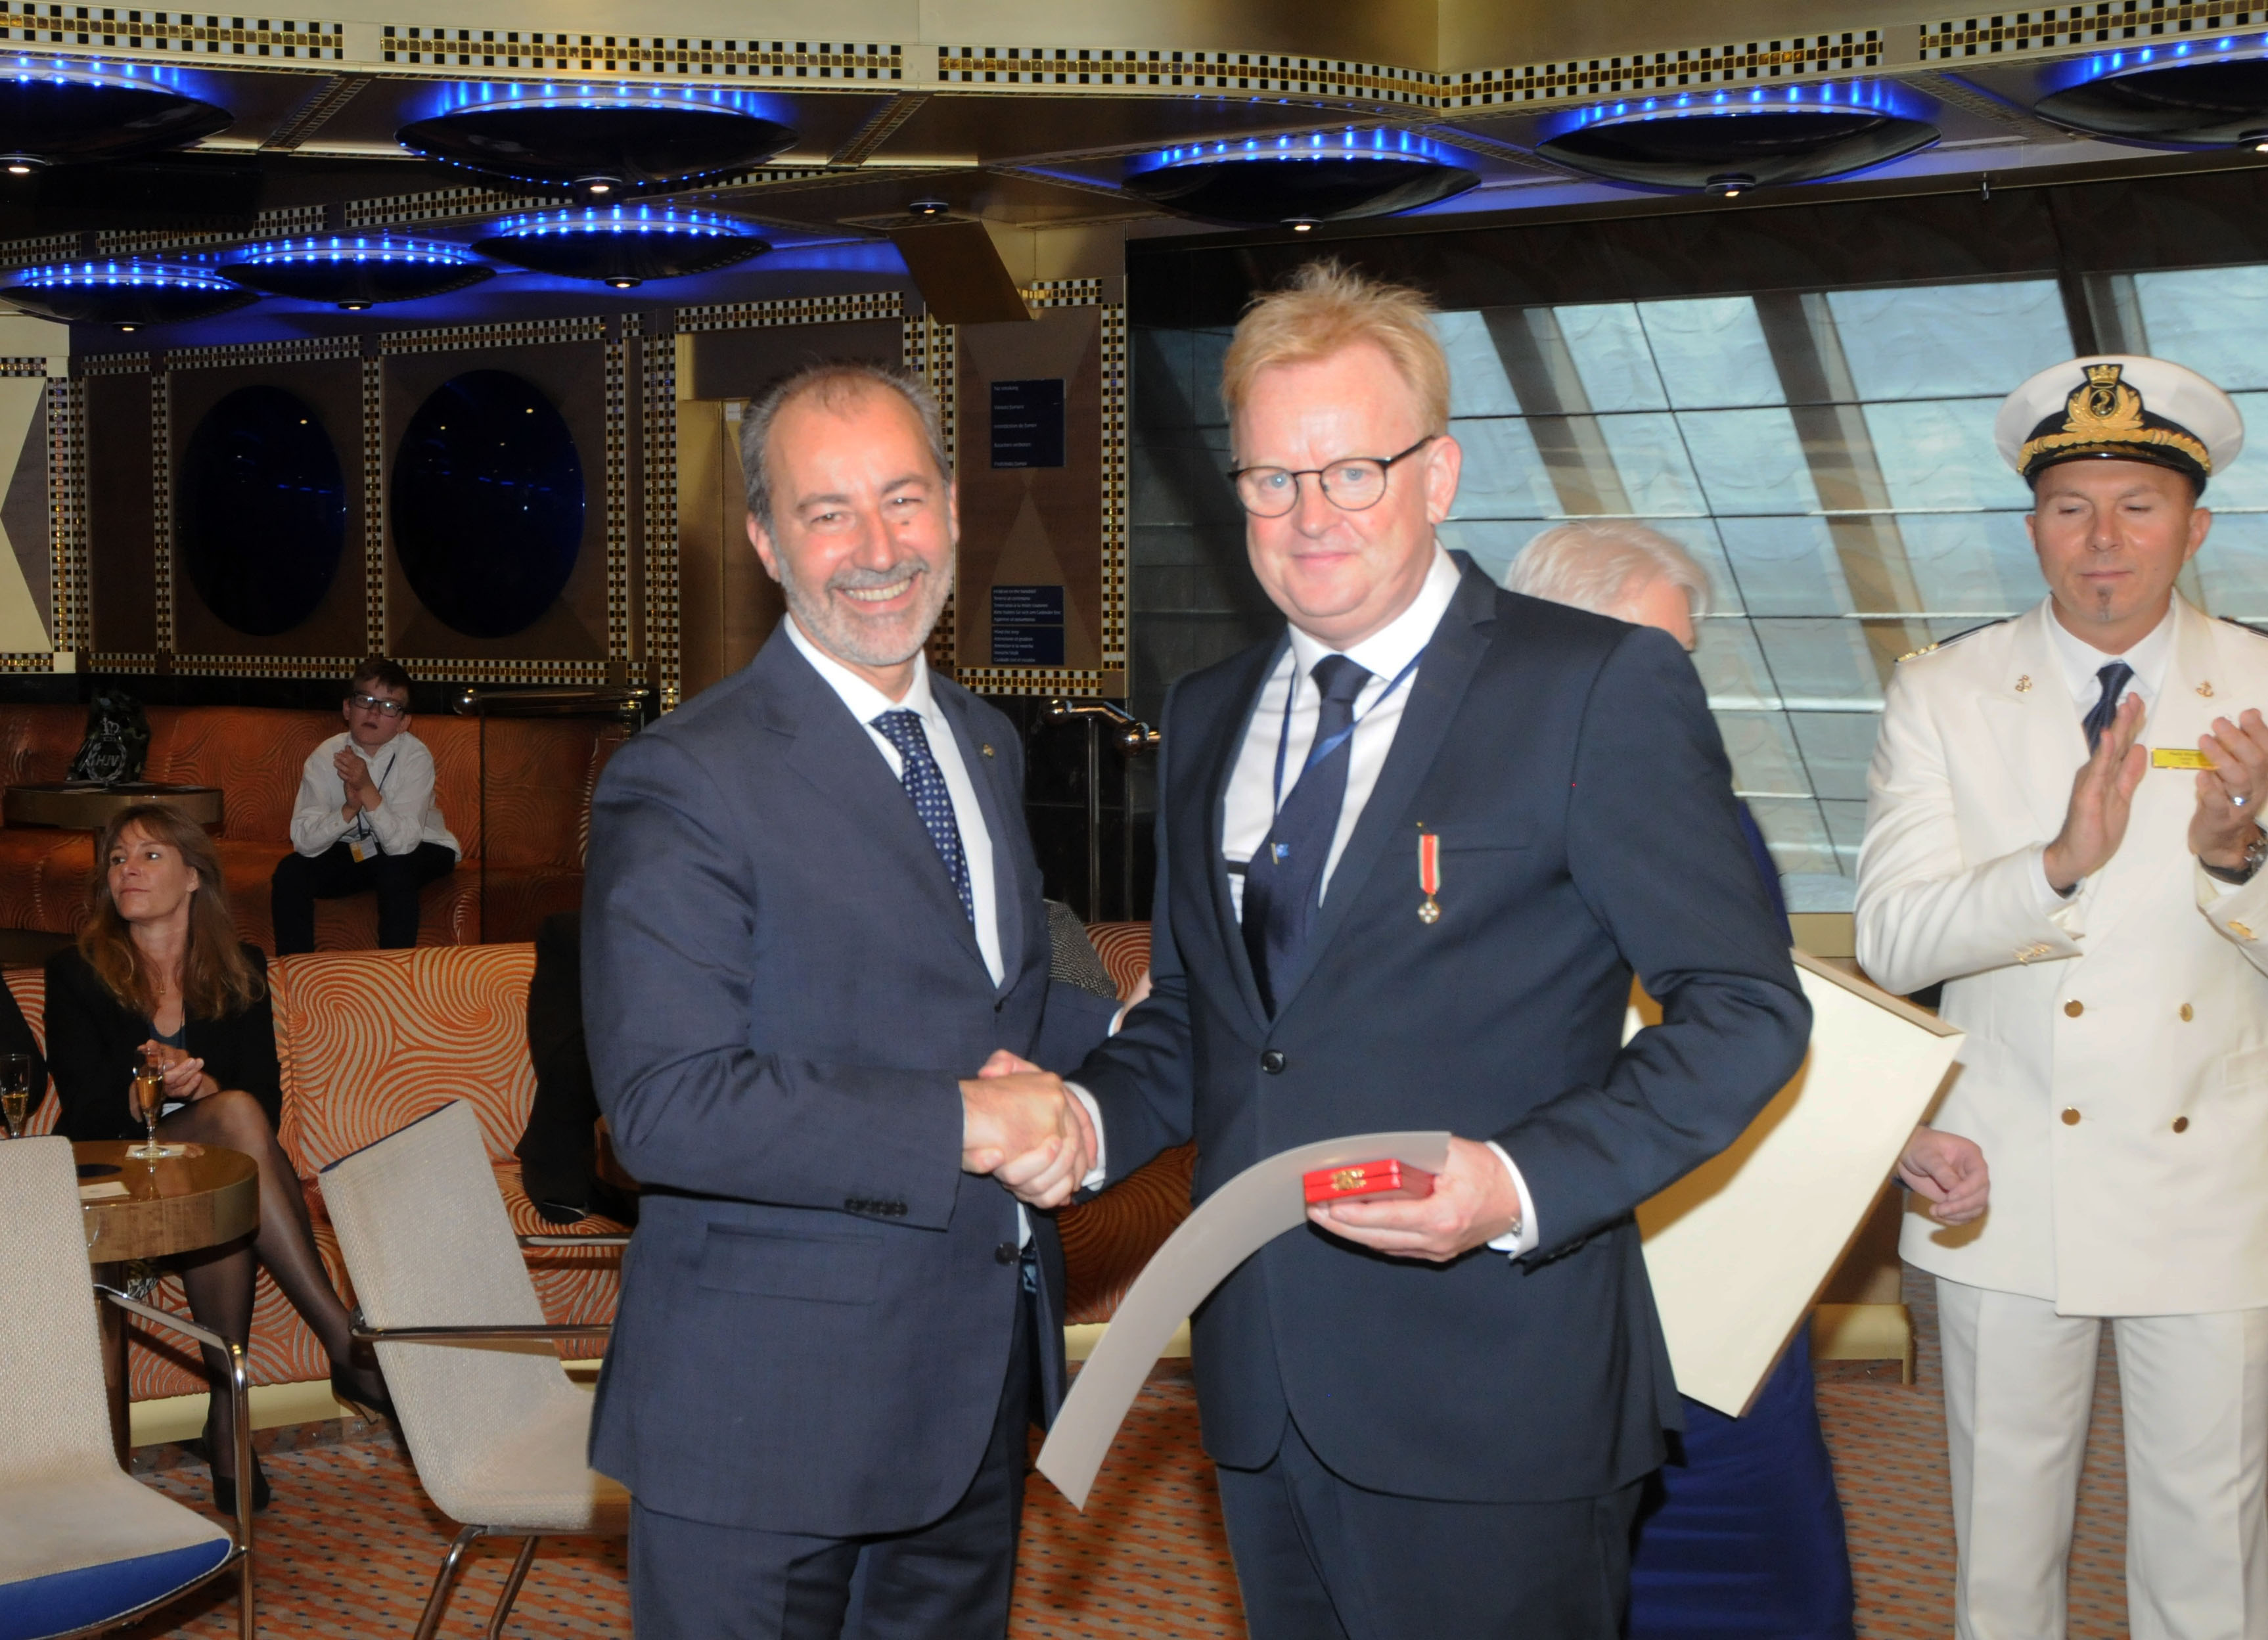 "Photo HASSE FERROLD:  Italian National Day 30 05 2015 : The Ambassador of Italy, Stefano Queirolo Palmas invited to attend the celebrations of the Italian National Day, which this year took place on Saturday, 30th May 2015 form 10.30-14.30, on board the Italian cruise ship ""Costa Favolosa""  at Oceankaj Copenhagen. Photo 1: Middle The Ambassador of Italy and Danish Rear Admiral Nils Wang  http://forsvaret.dk/FAK/Om/organisation/ledelse/Pages/default.aspx  2: The Ambassador of Italy and his wife with the Captain Paolo Viscafé and right the COSTA Sales Manager Scandinavia  & Northern and Eastern Europe Giancarlo Tedesco www.costacruise.com  4: Speech by the Ambassador 5: R-L: Hans Hermansen Copenhagen Post, The Ambassadors of Turkey, Saudi Arabia ,Egypt , Nepal.  Following were decorated with ITALIAN ORDERS: 6: Thomas Harder www.thomasharder.dk 7: 8:Henrik Otto Jensen www.nielswinther.dk  9: Italian cruise ship ""Costa Favolosa""www.costacruise.com"